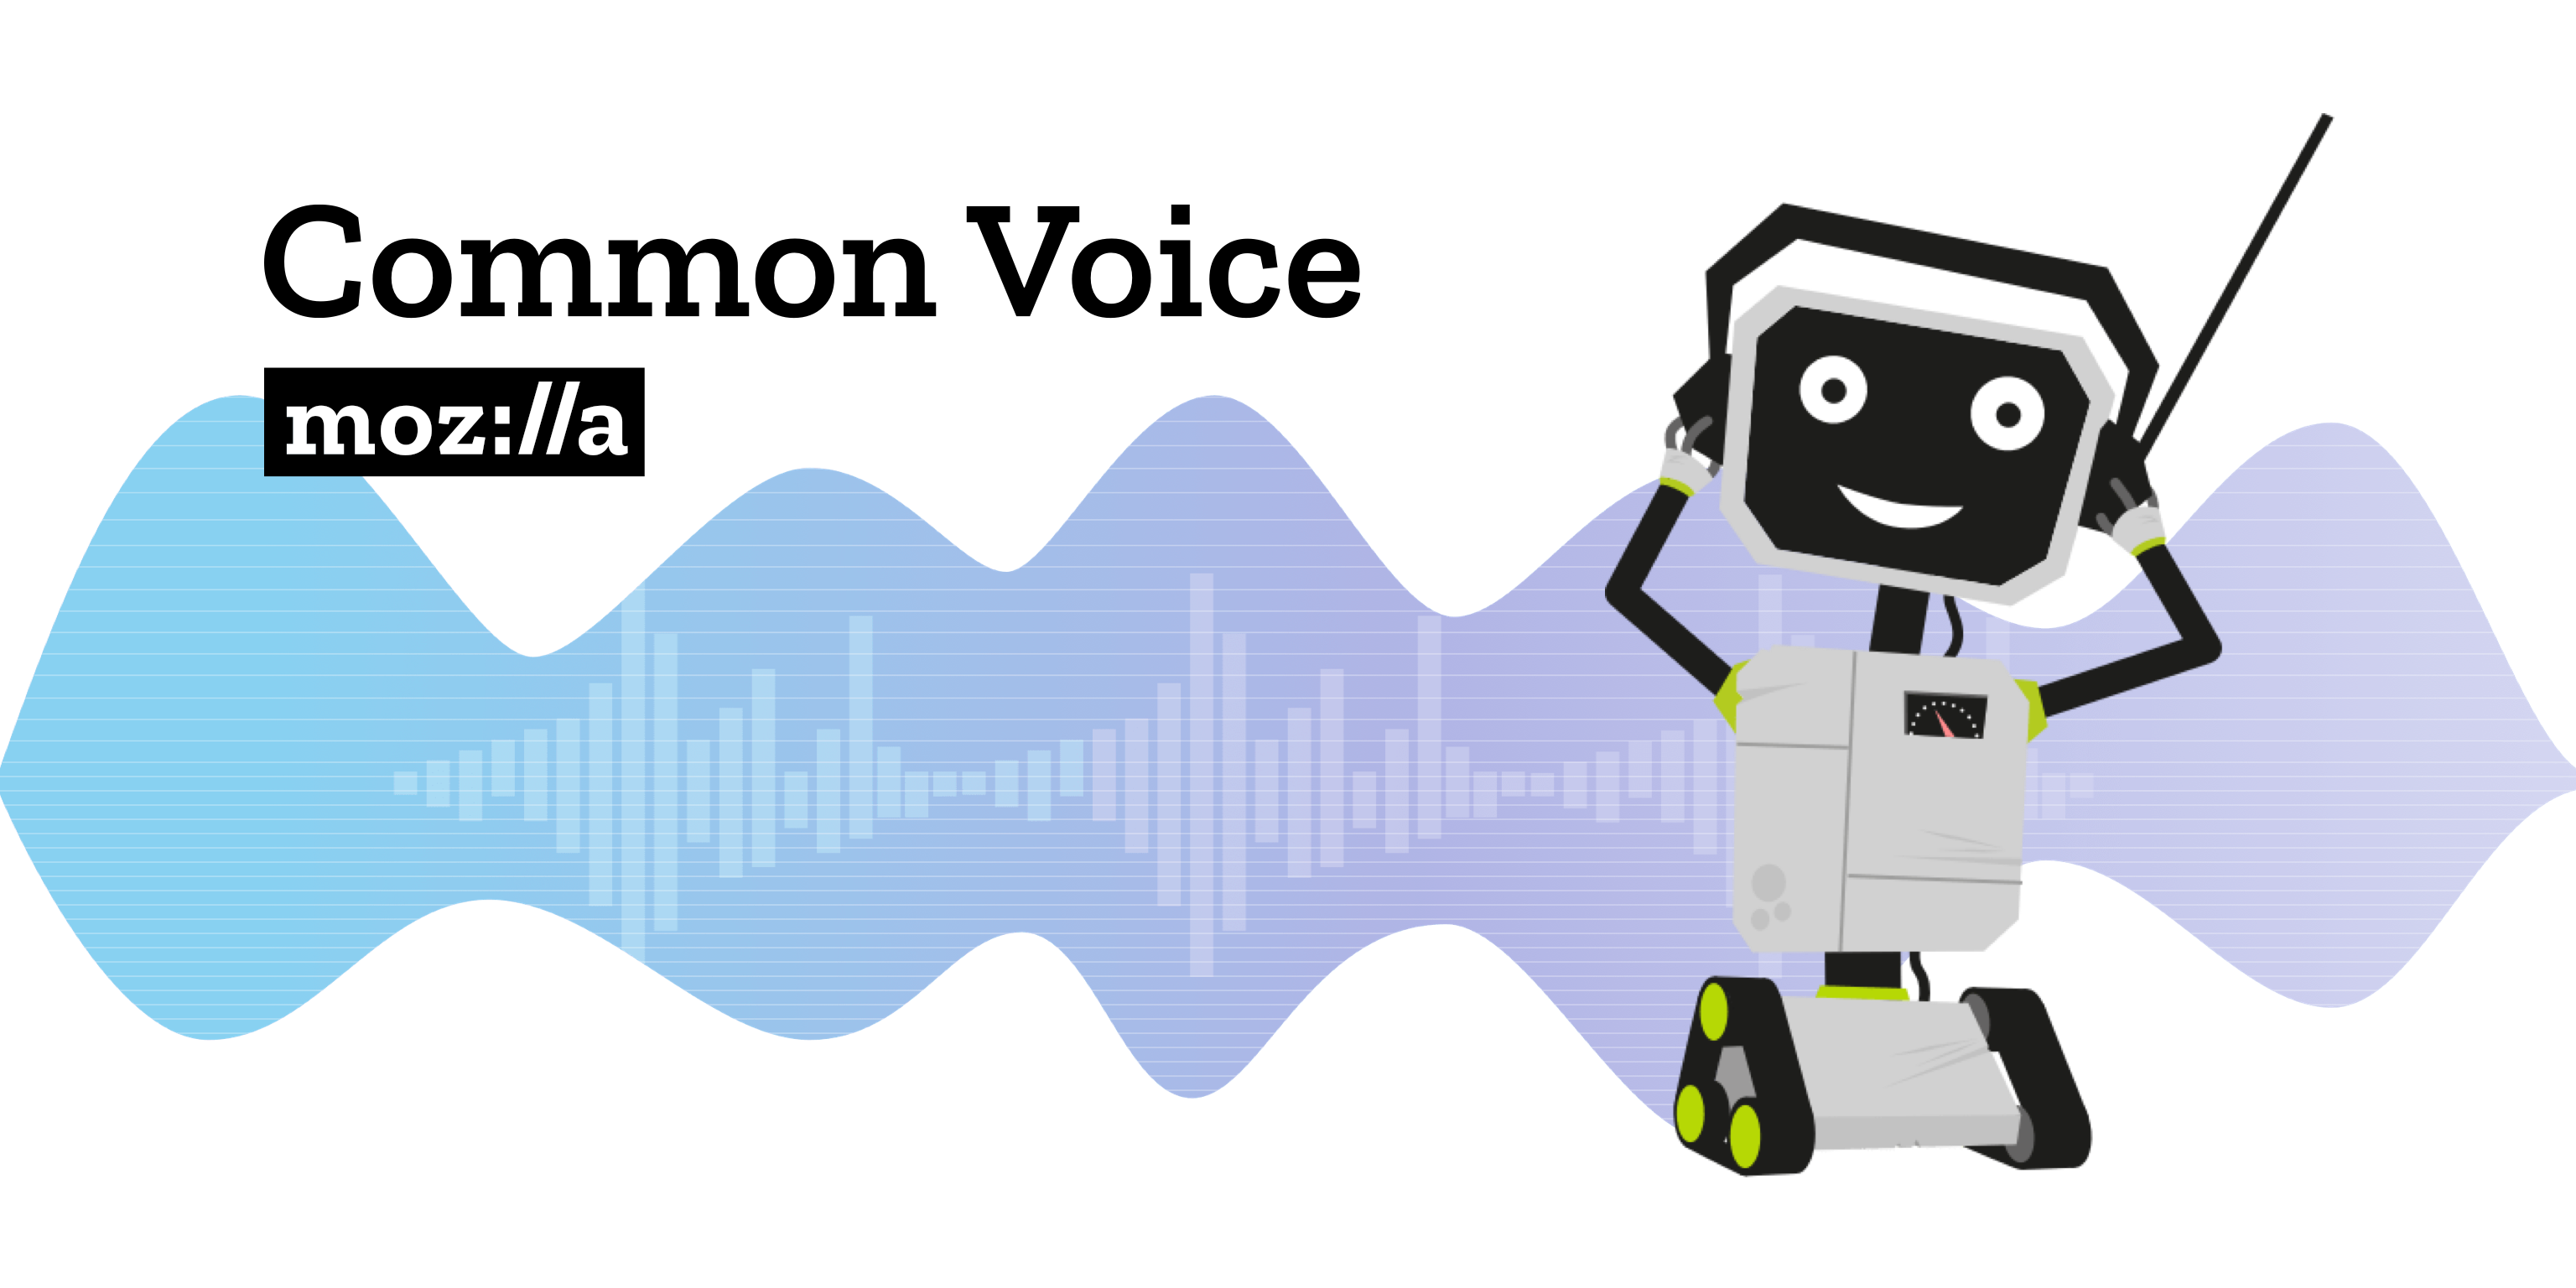 Mozilla Common Voice. Credit: Wikimedia Commons